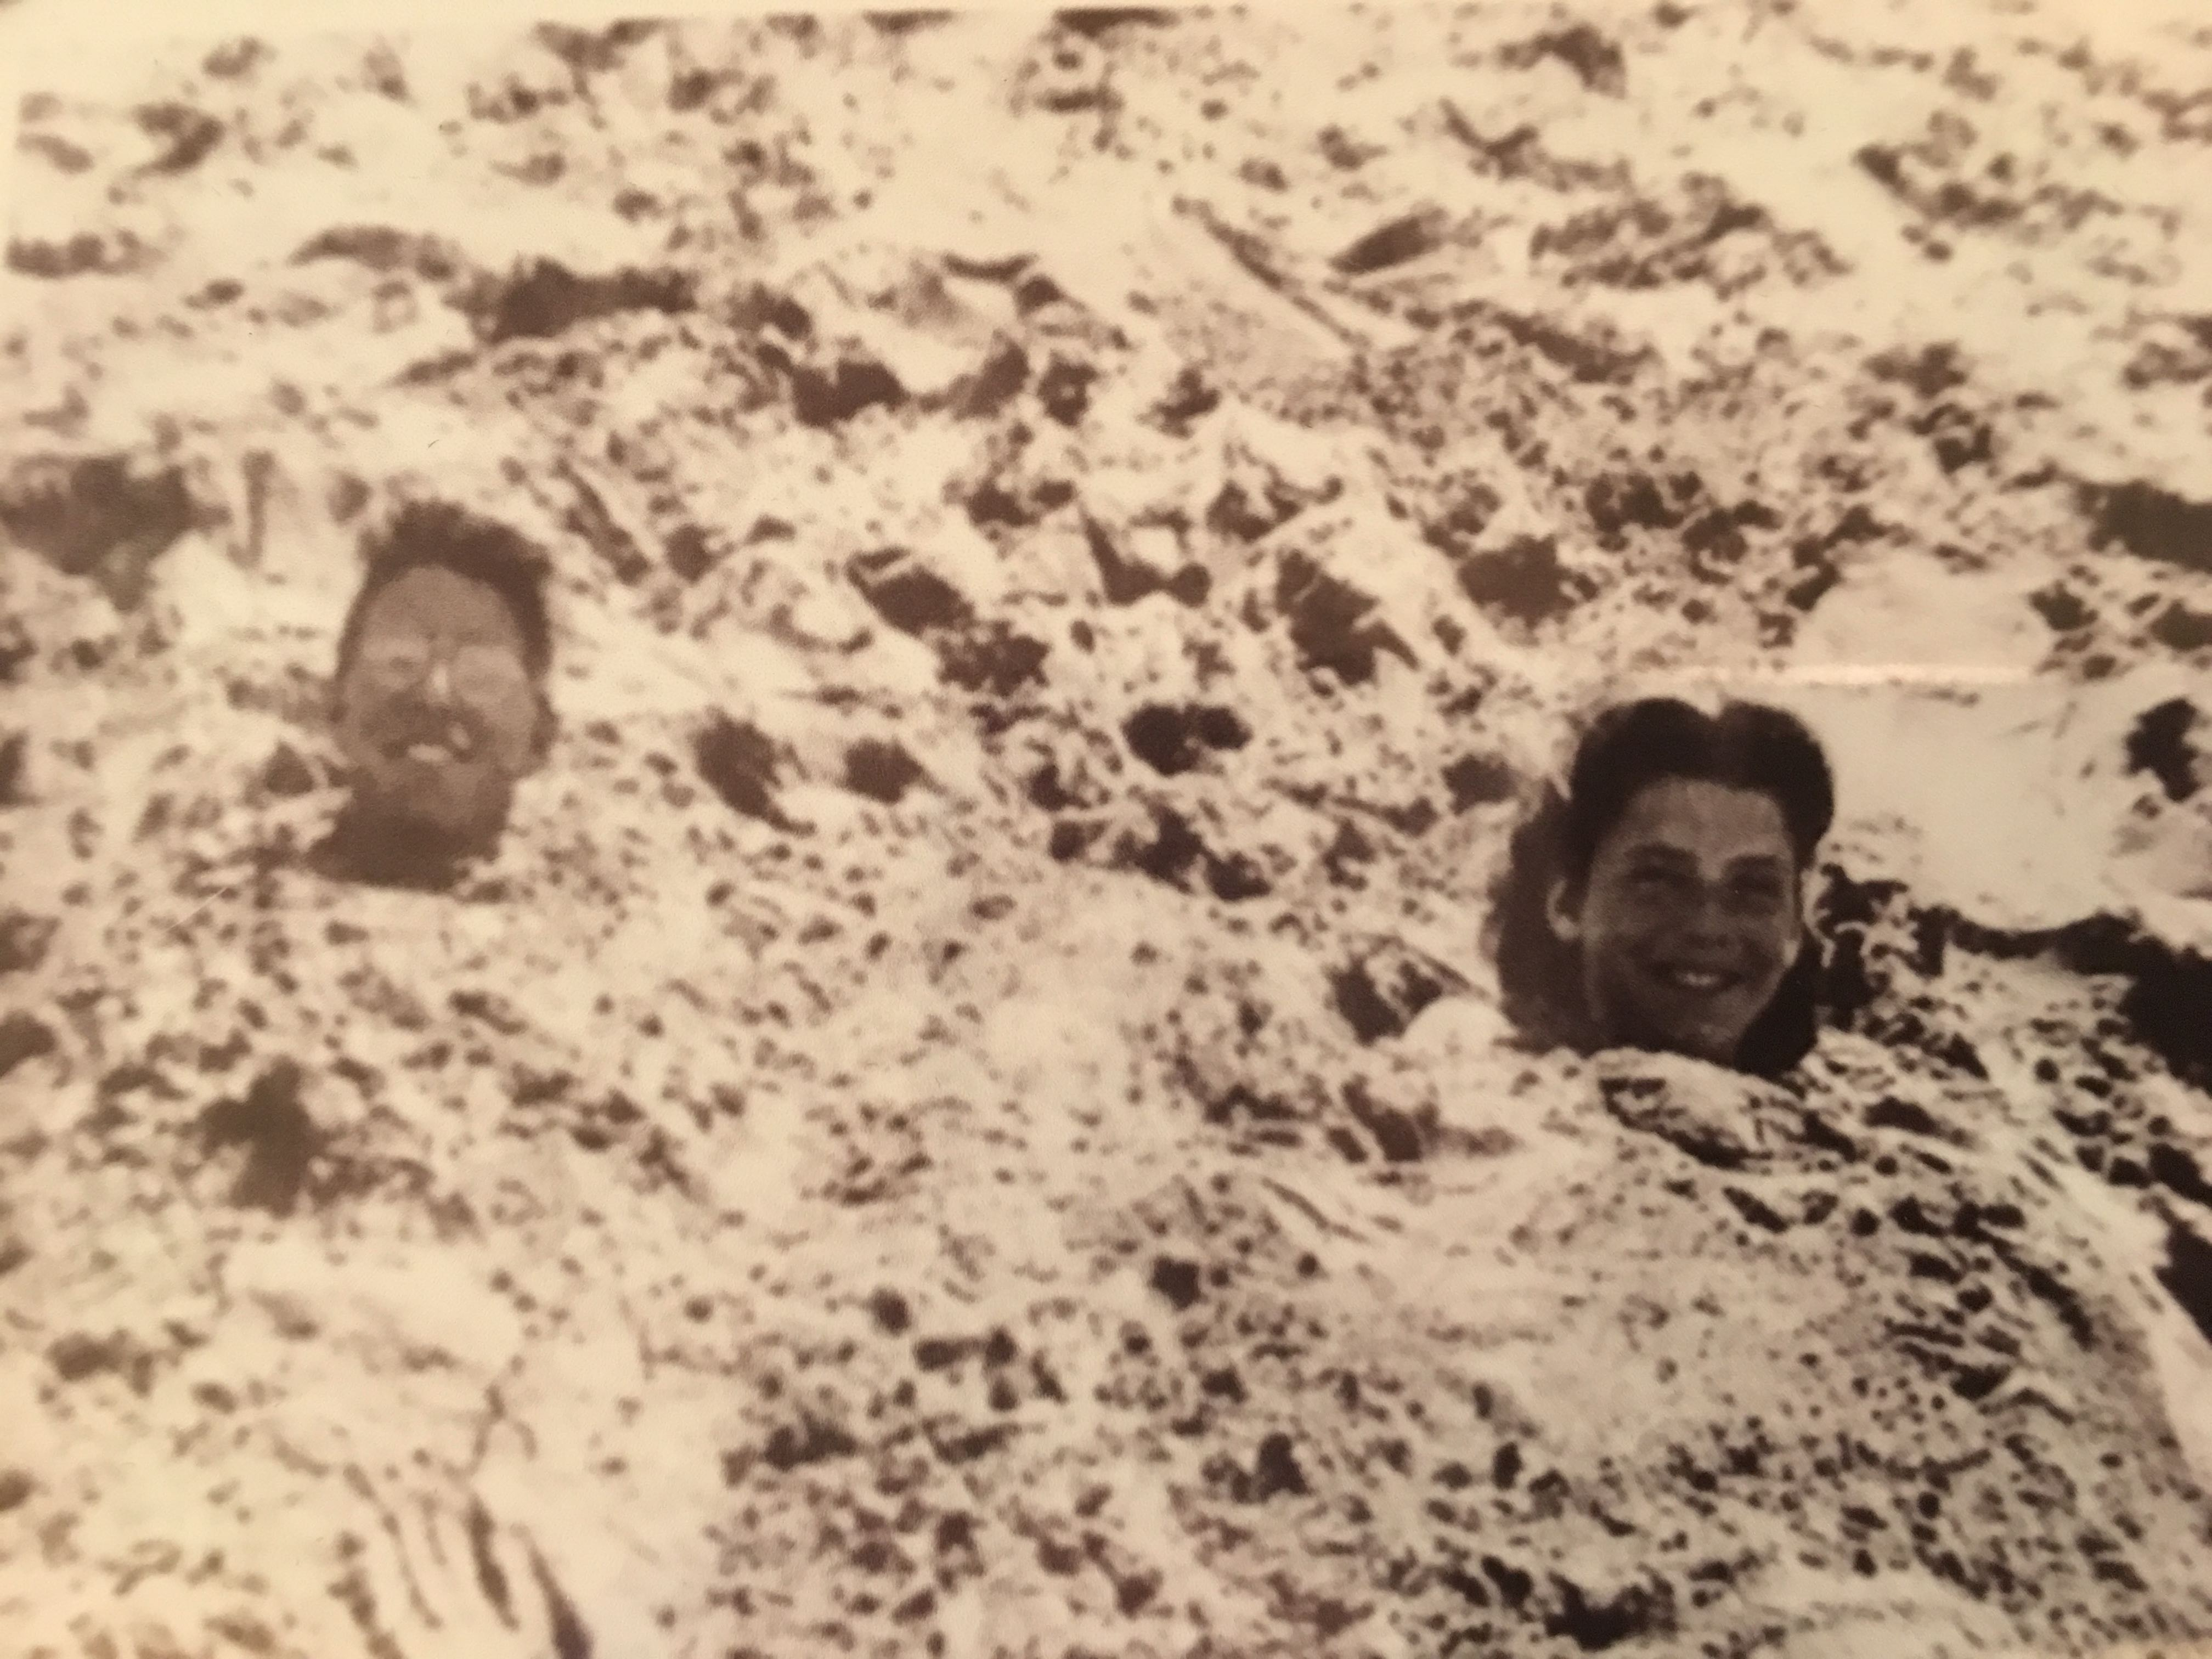 Shirley Anderson found this photo of her and Bud buried in the sand (around the time of their 8th grade year) as she prepared to move to Arkansas to marry Bud.